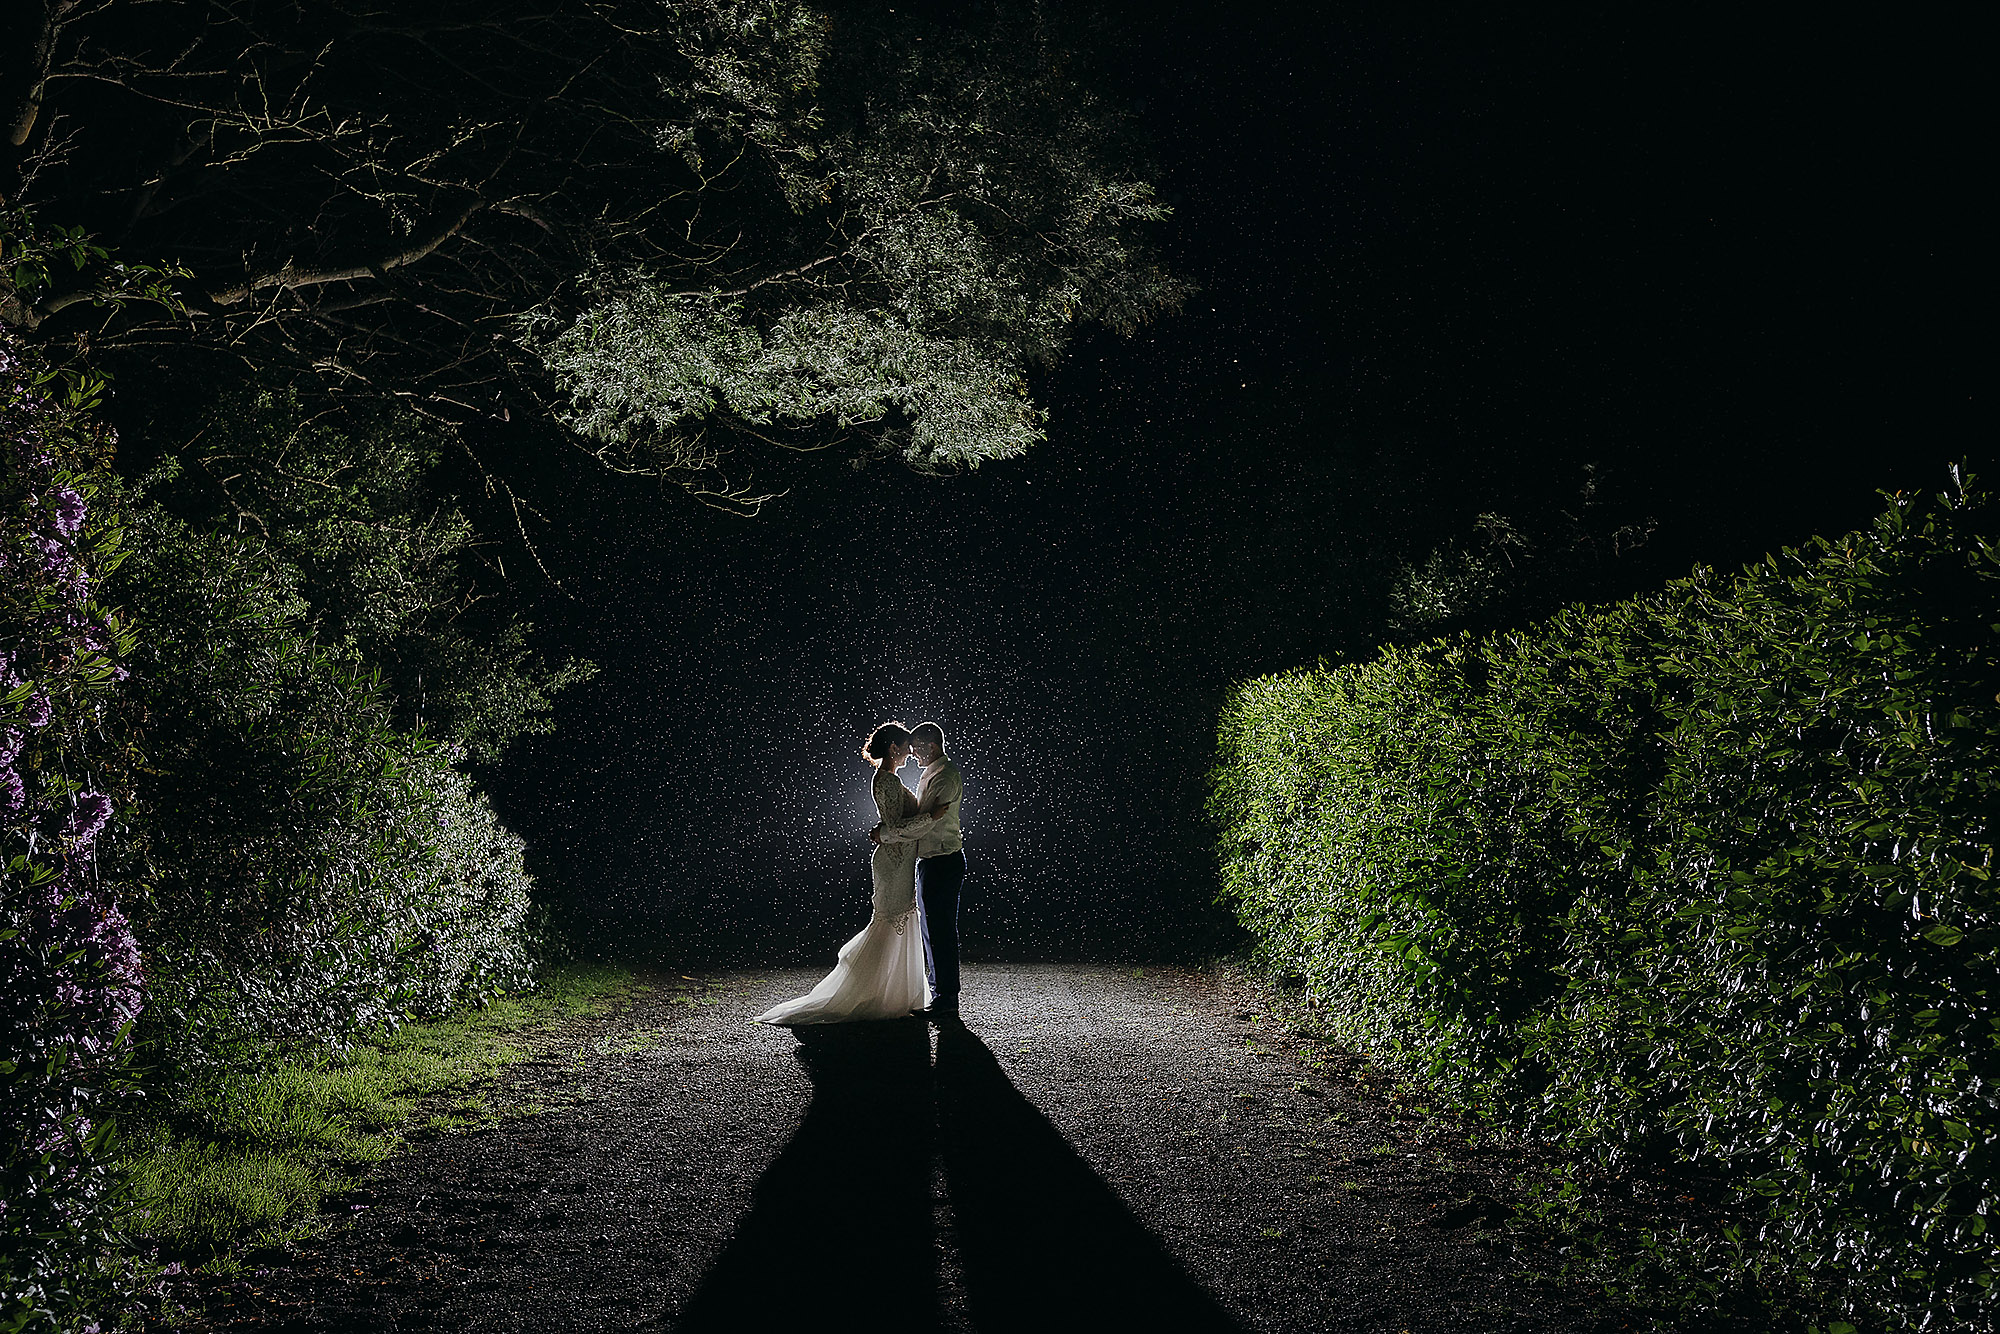 Christchurch Wedding Photographer rain wedding photo with bride and groom at night backlit in Christchurch Rebecca Claridge Photography